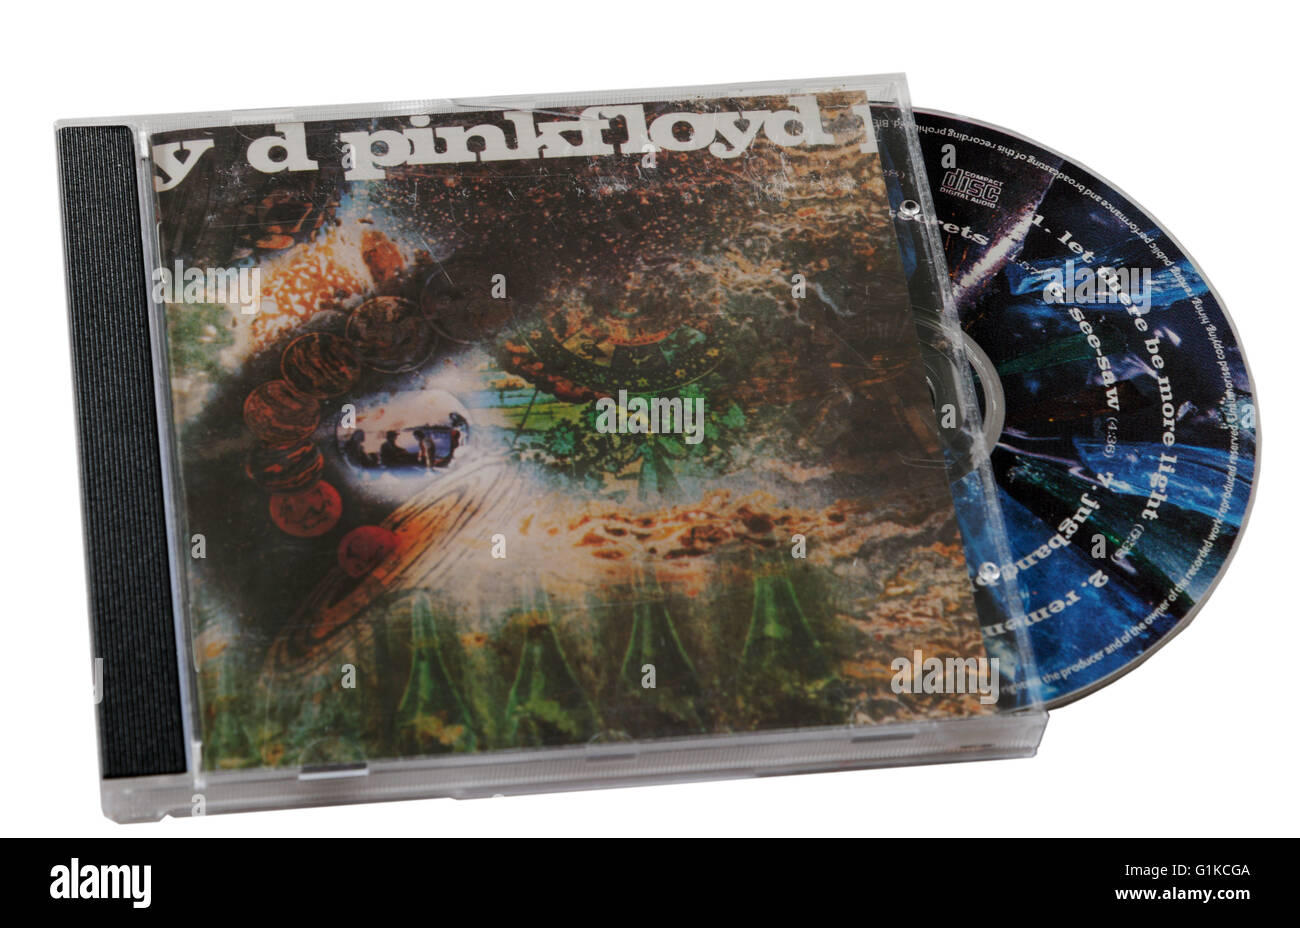 Pink Floyd A Saucerful of Secrets CD - Stock Image